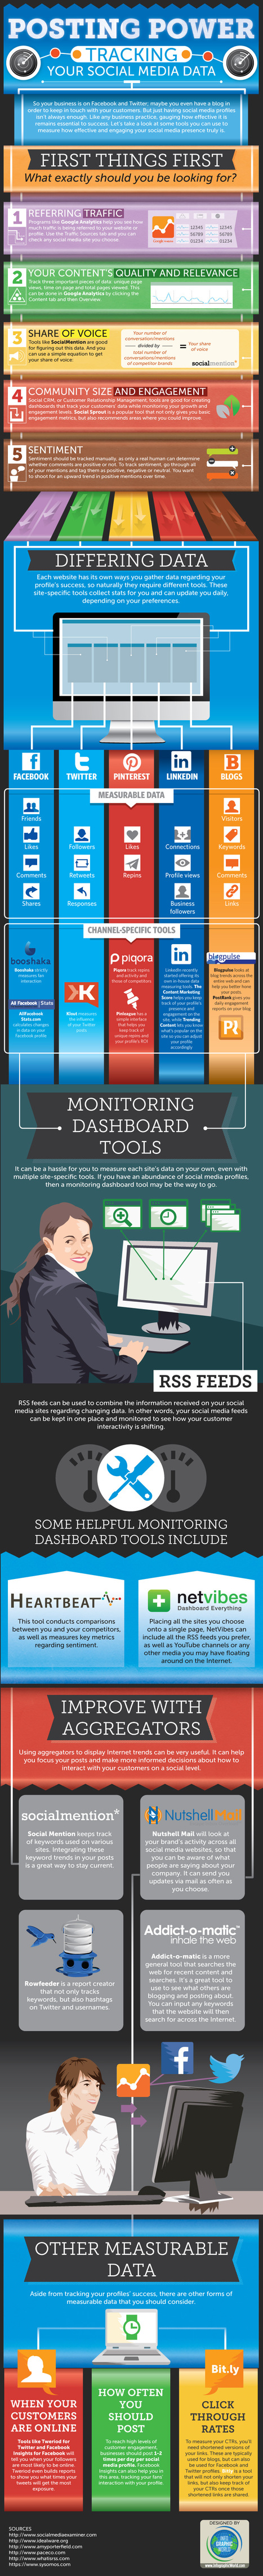 How To Track Your Social Media Data And Measure ROI [INFOGRAPHIC] - AllTwitter | Great Ideas for Non-Profits | Scoop.it